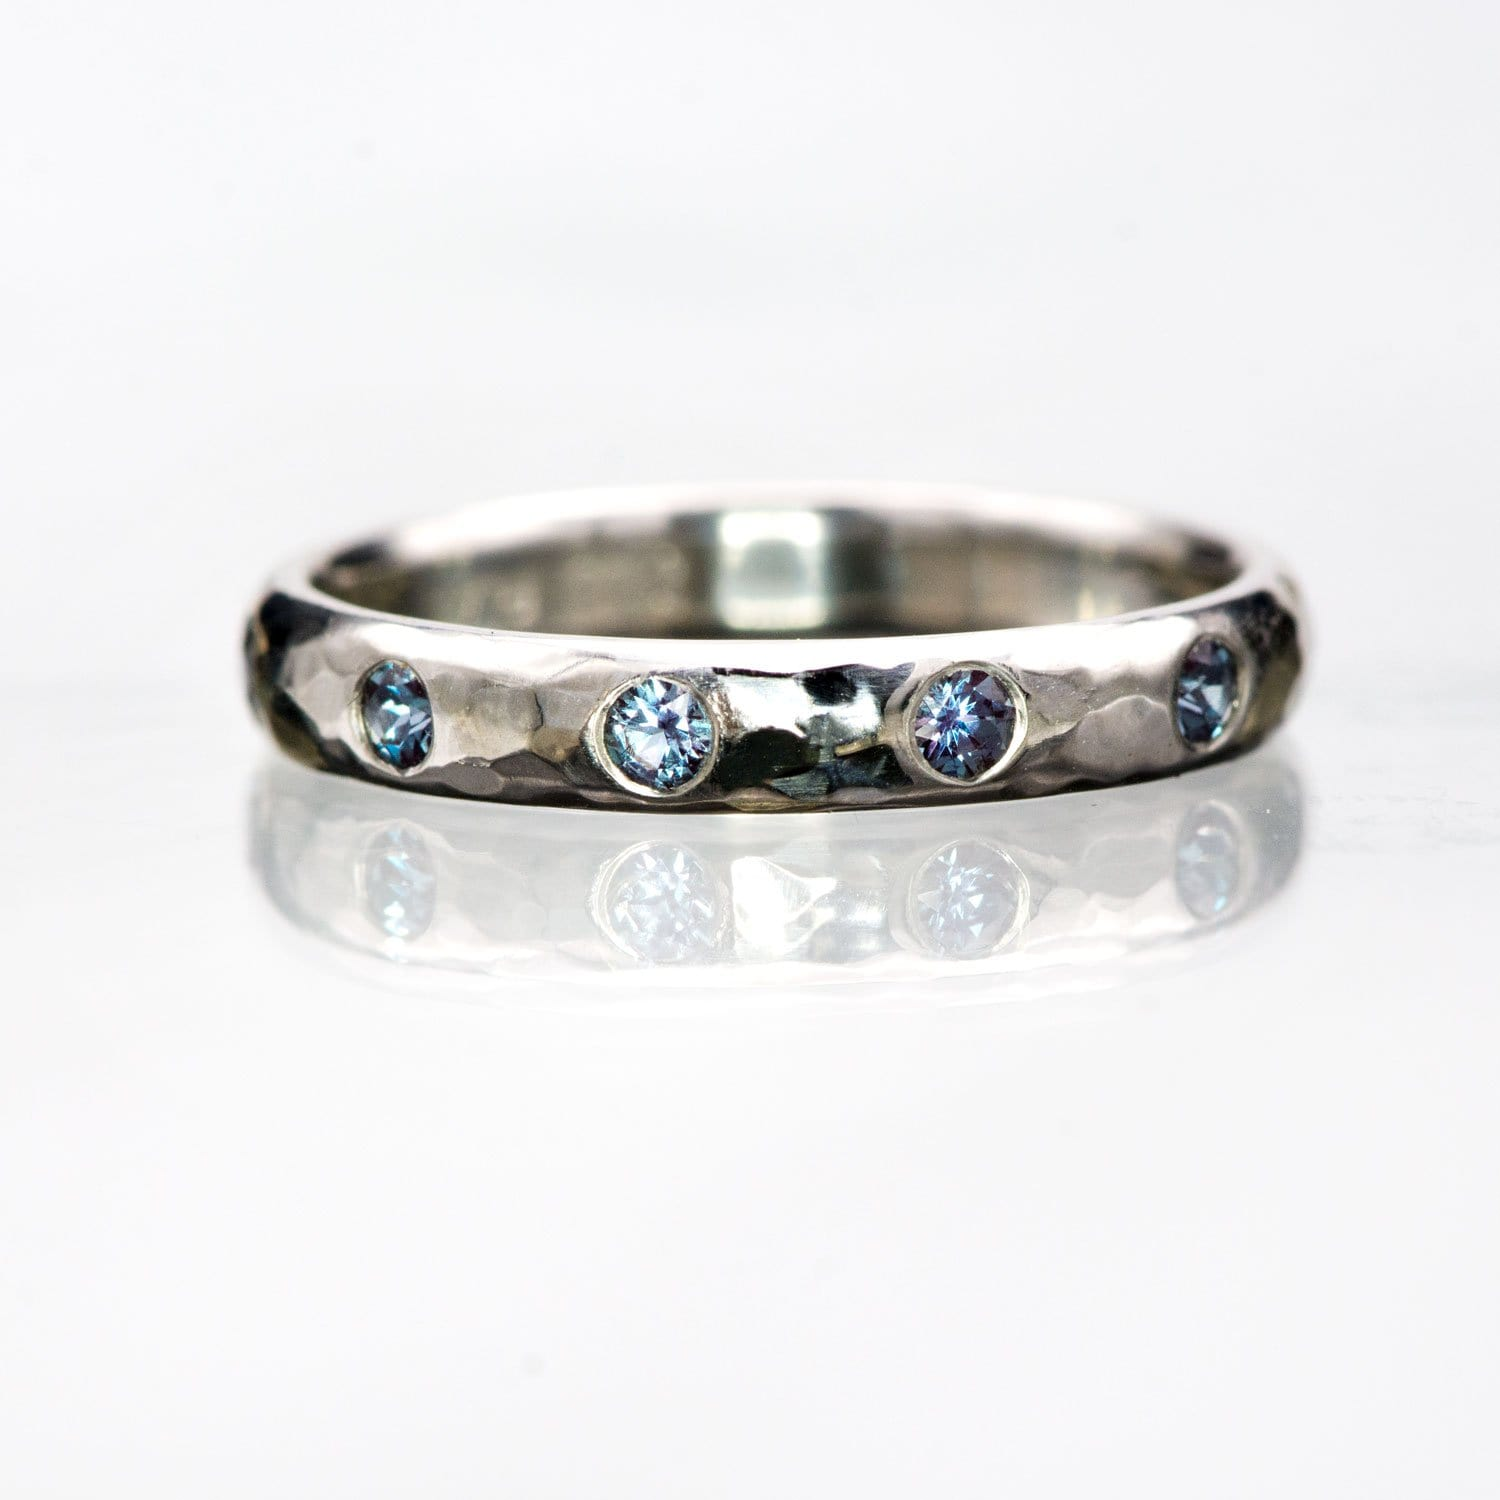 Narrow Hammered Texture Wedding Band With Flush Set Alexandrites